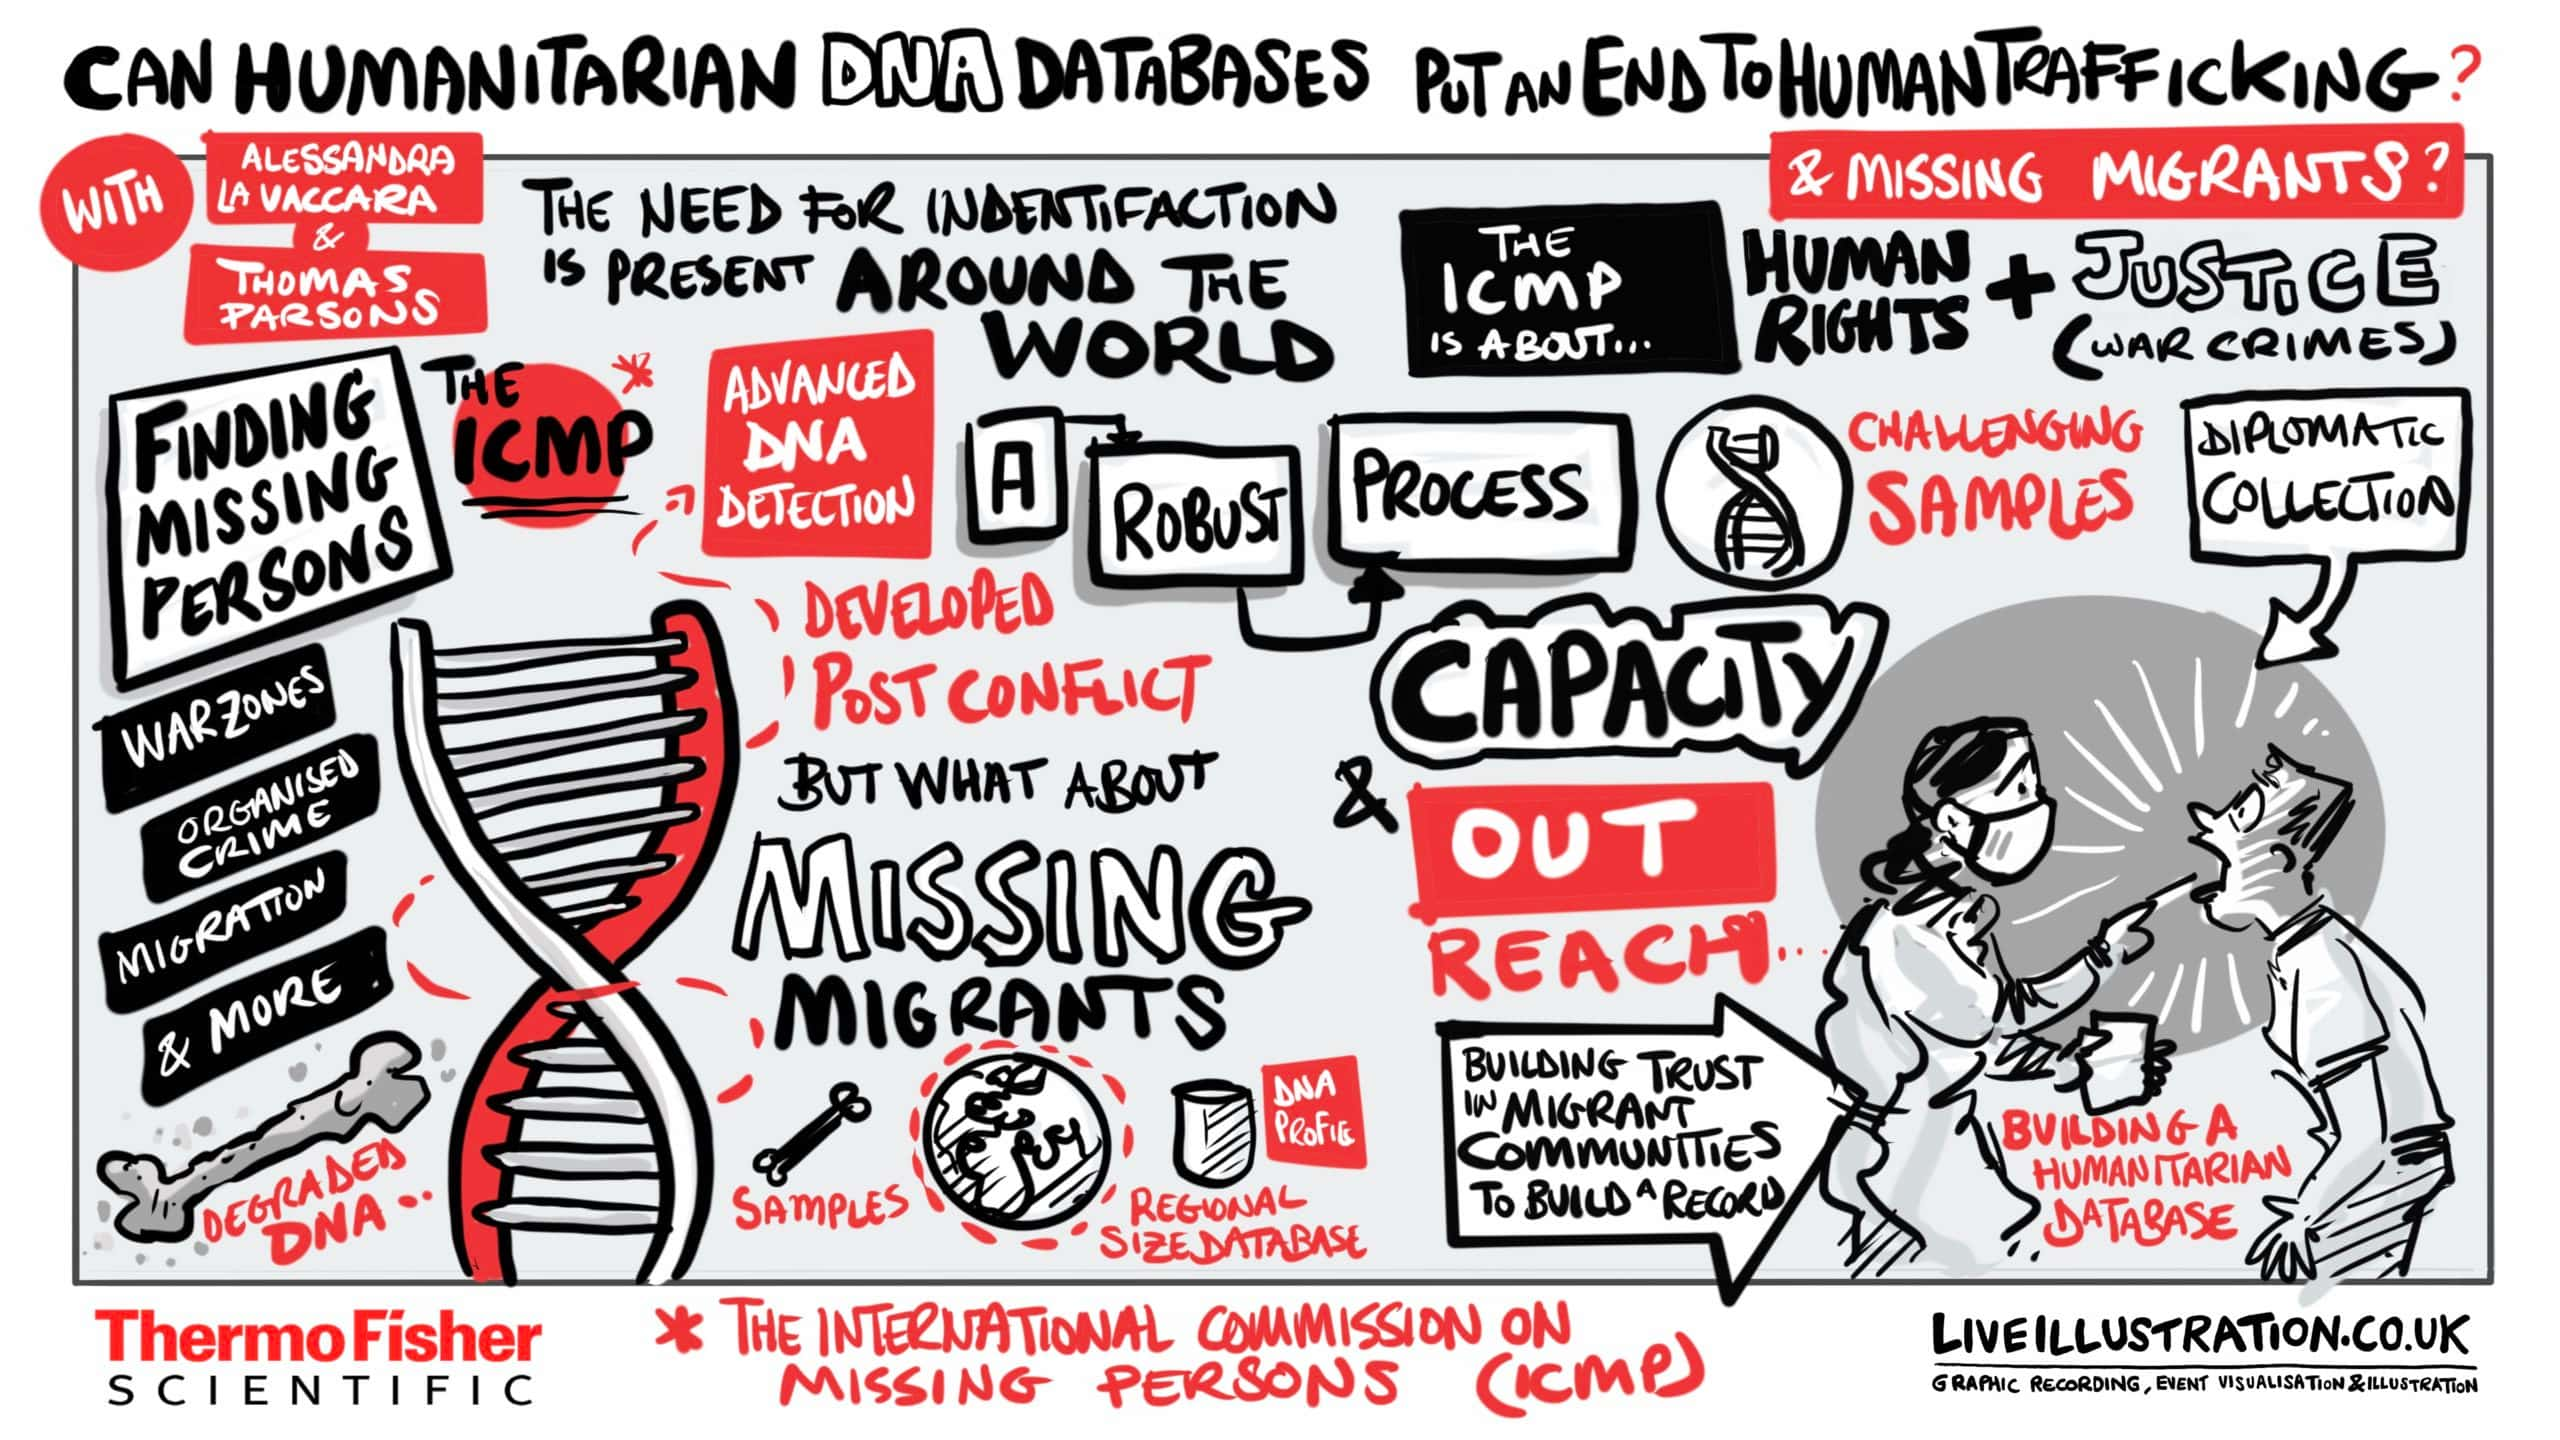 A graphic flowchart shows the potential of humanitarian DNA databases